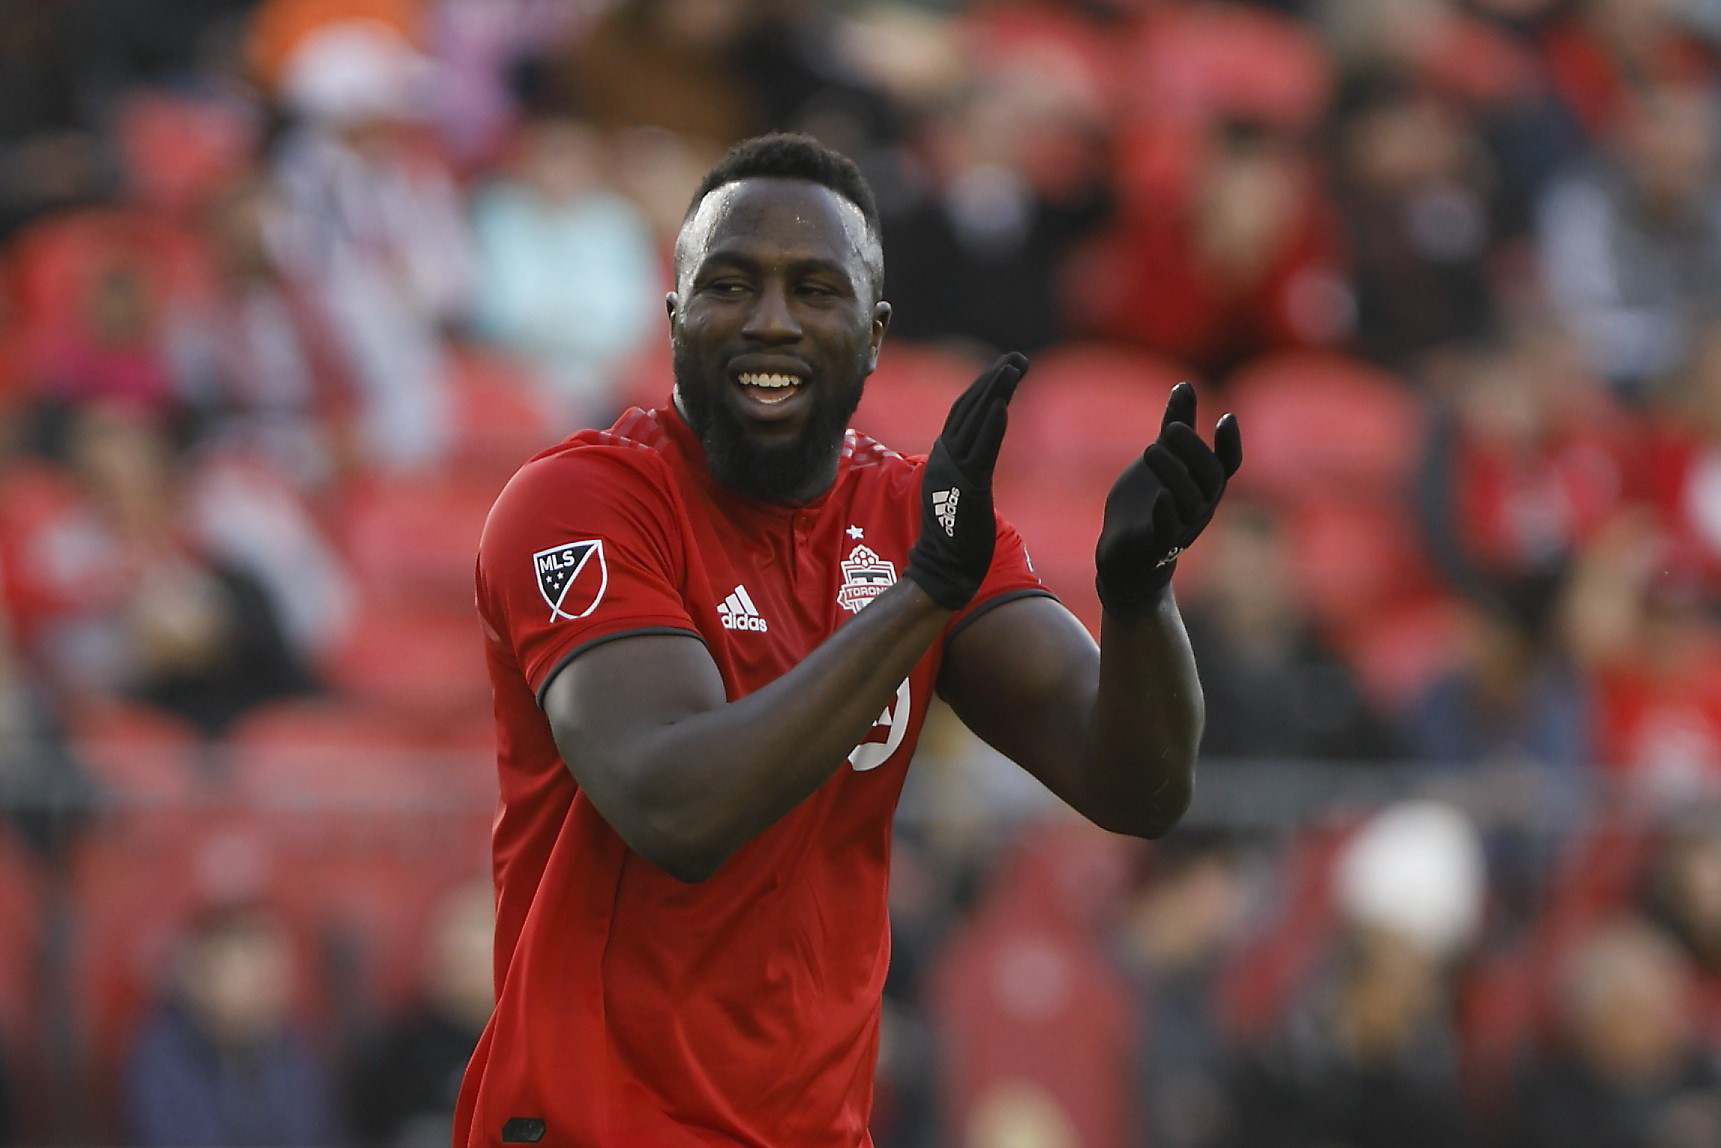 Toronto FC crashes in MLS Cup final loss to Sounders